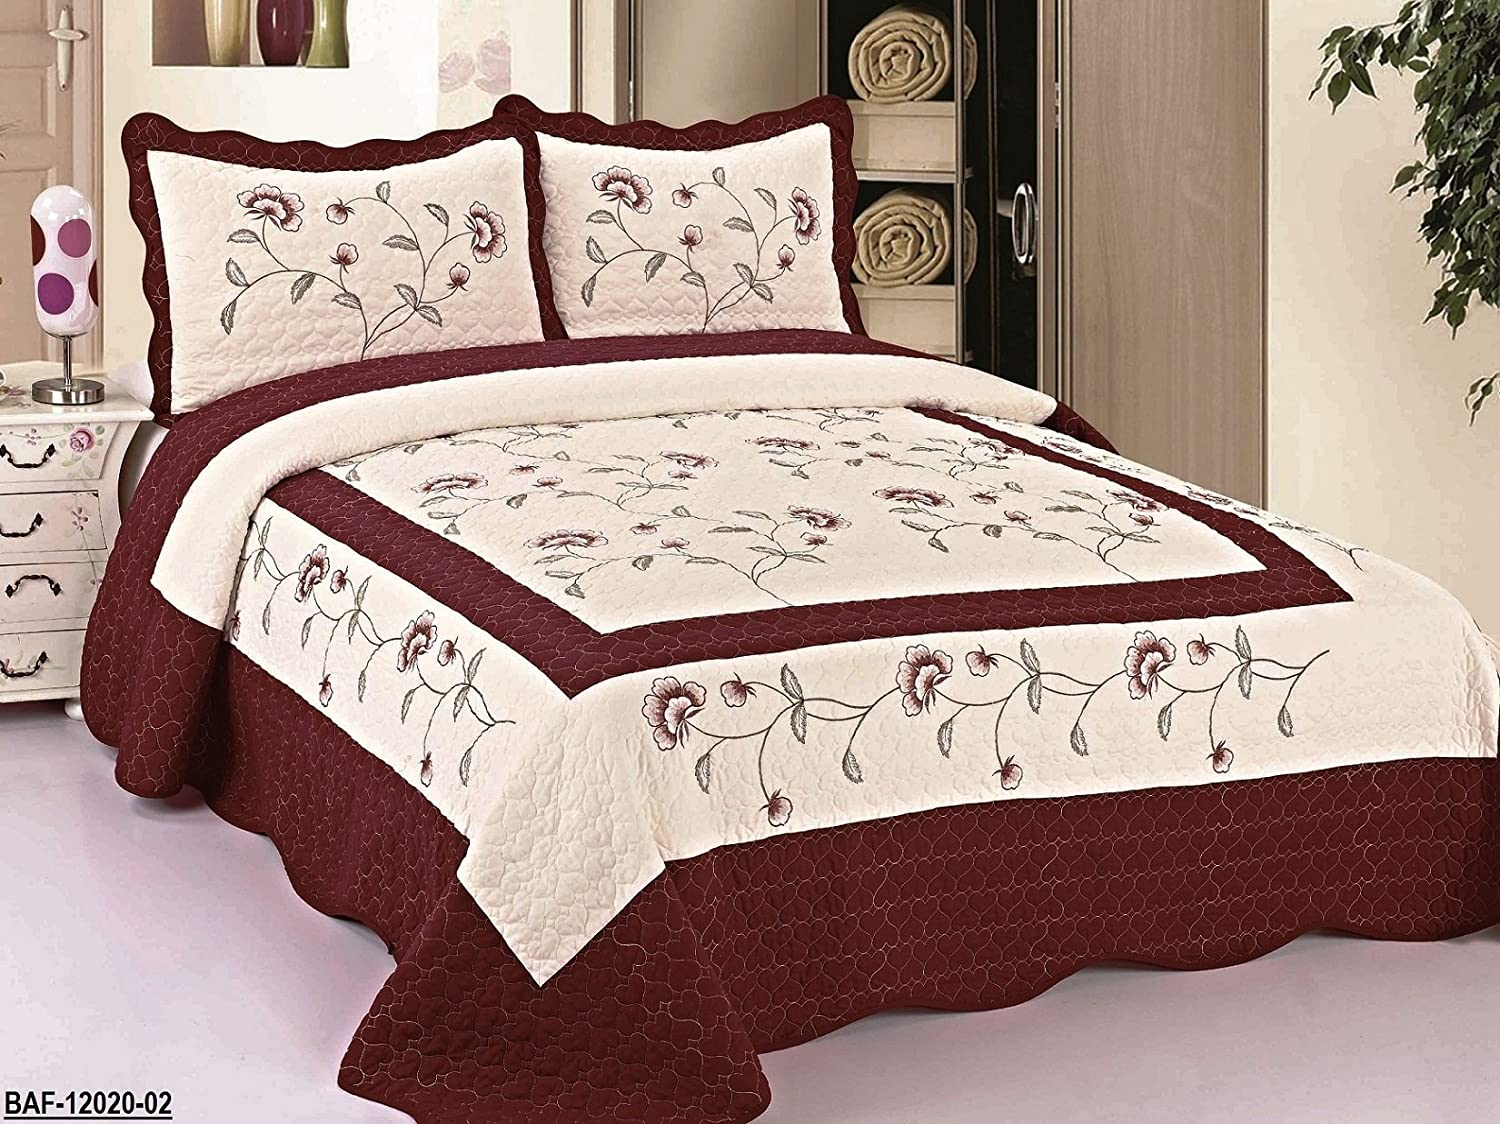 Amazon.com: 3pc Beige / Burgundy High Quality Fully Quilted Embroidery Bedspread  Bed Coverlets Cover Set , Queen King: Home U0026 Kitchen